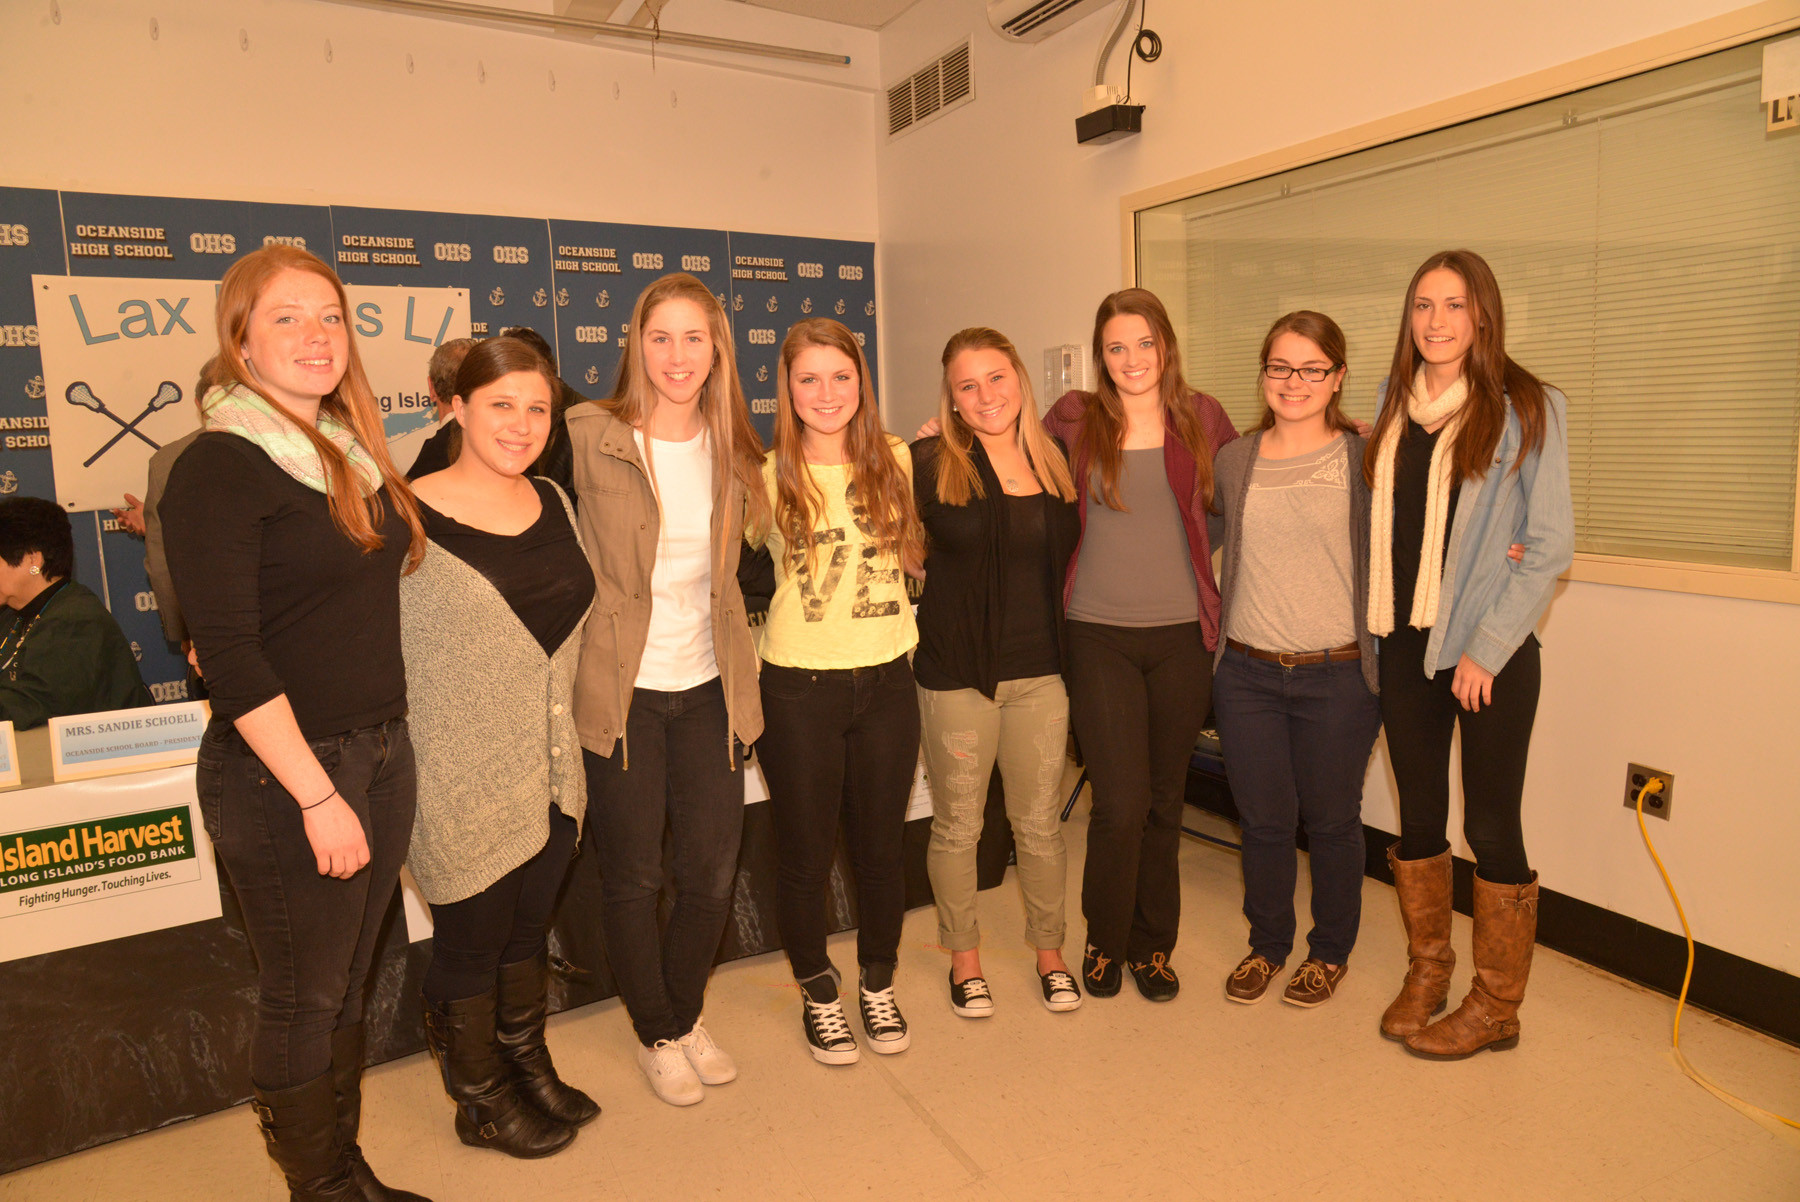 A few of the members of the Oceanside High School girls� lacrosse team were at the press conference.